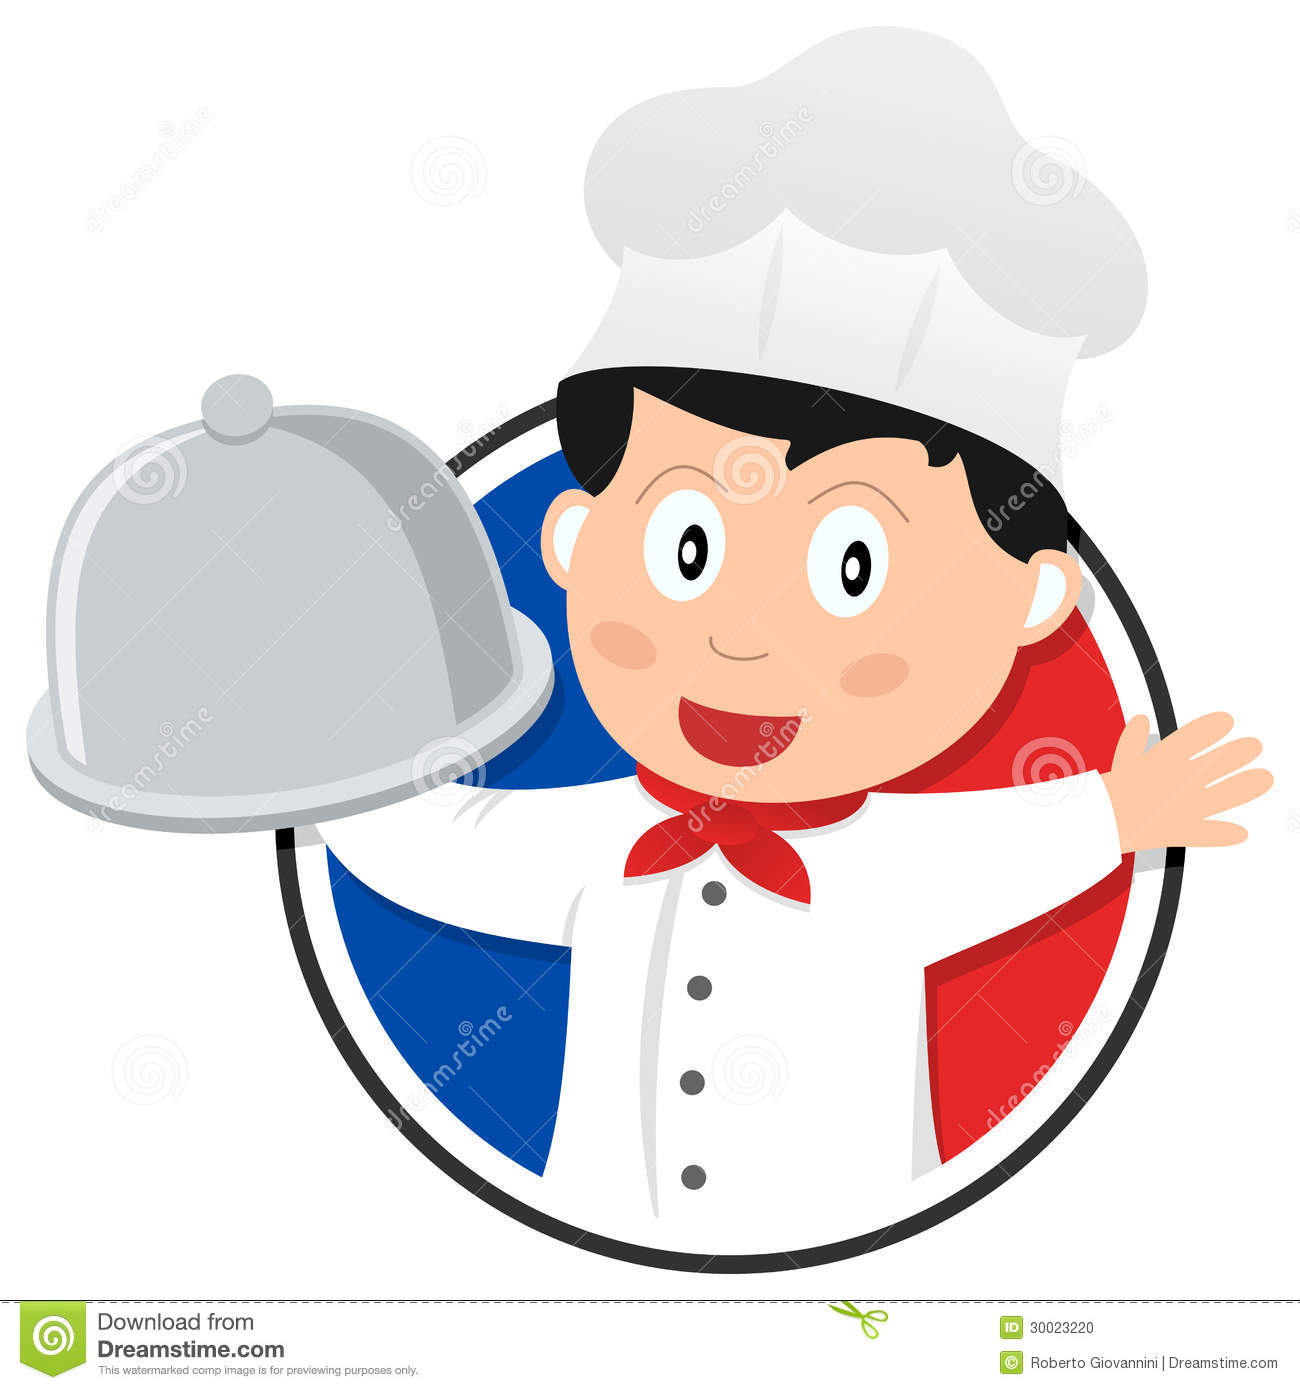 French Cuisine Chef Logo Vector Illustration : CartoonDealer.com ...